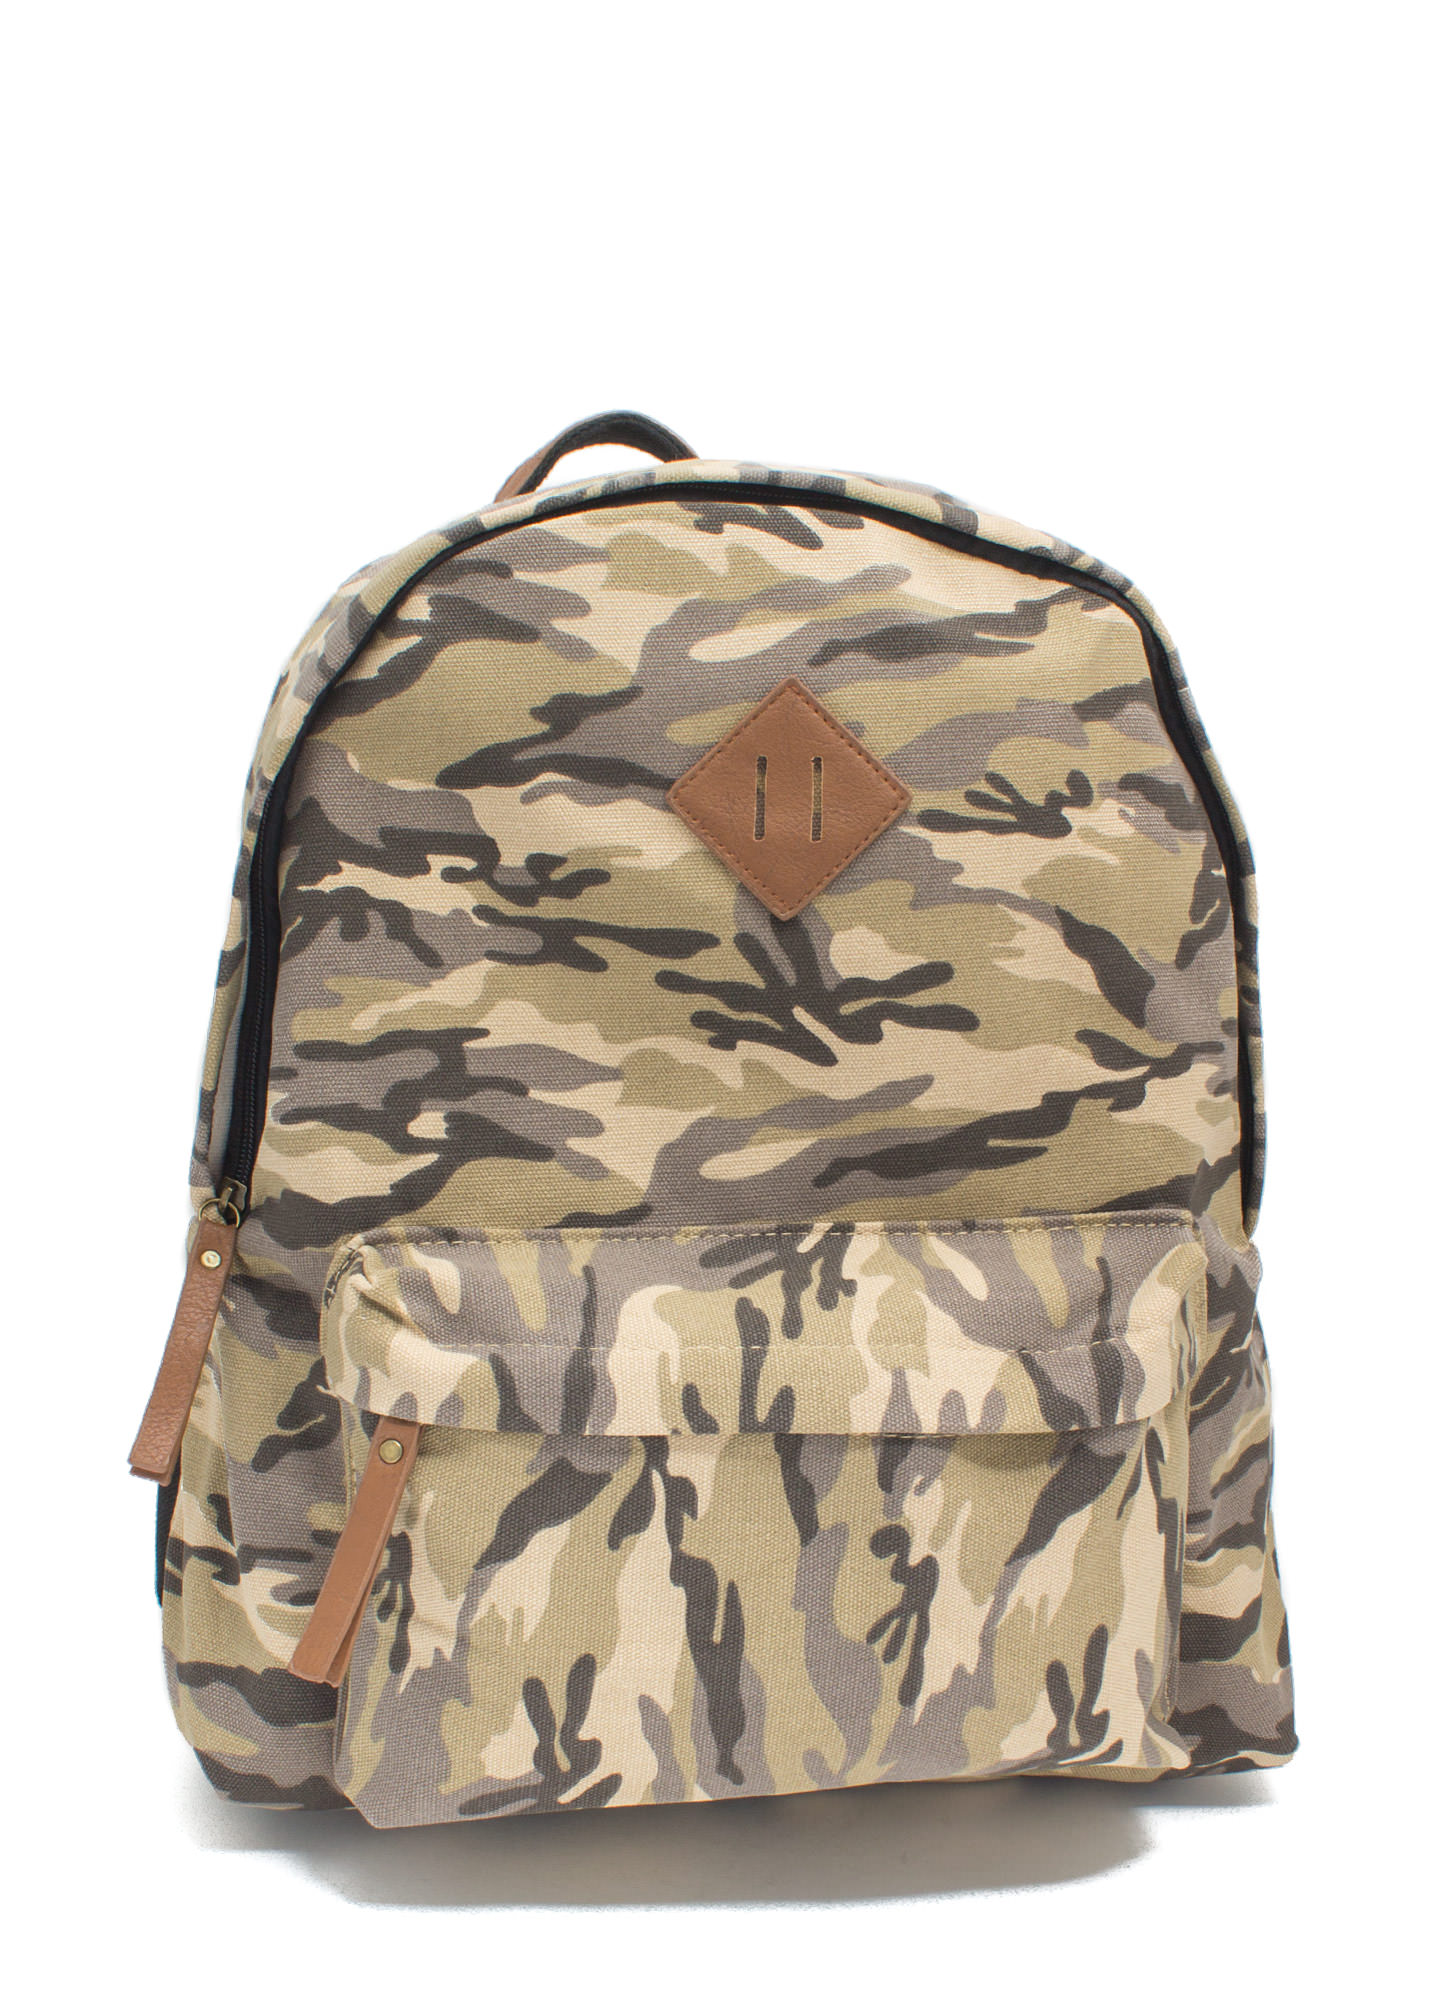 Stand Out Camouflage Backpack OLIVEMULTI